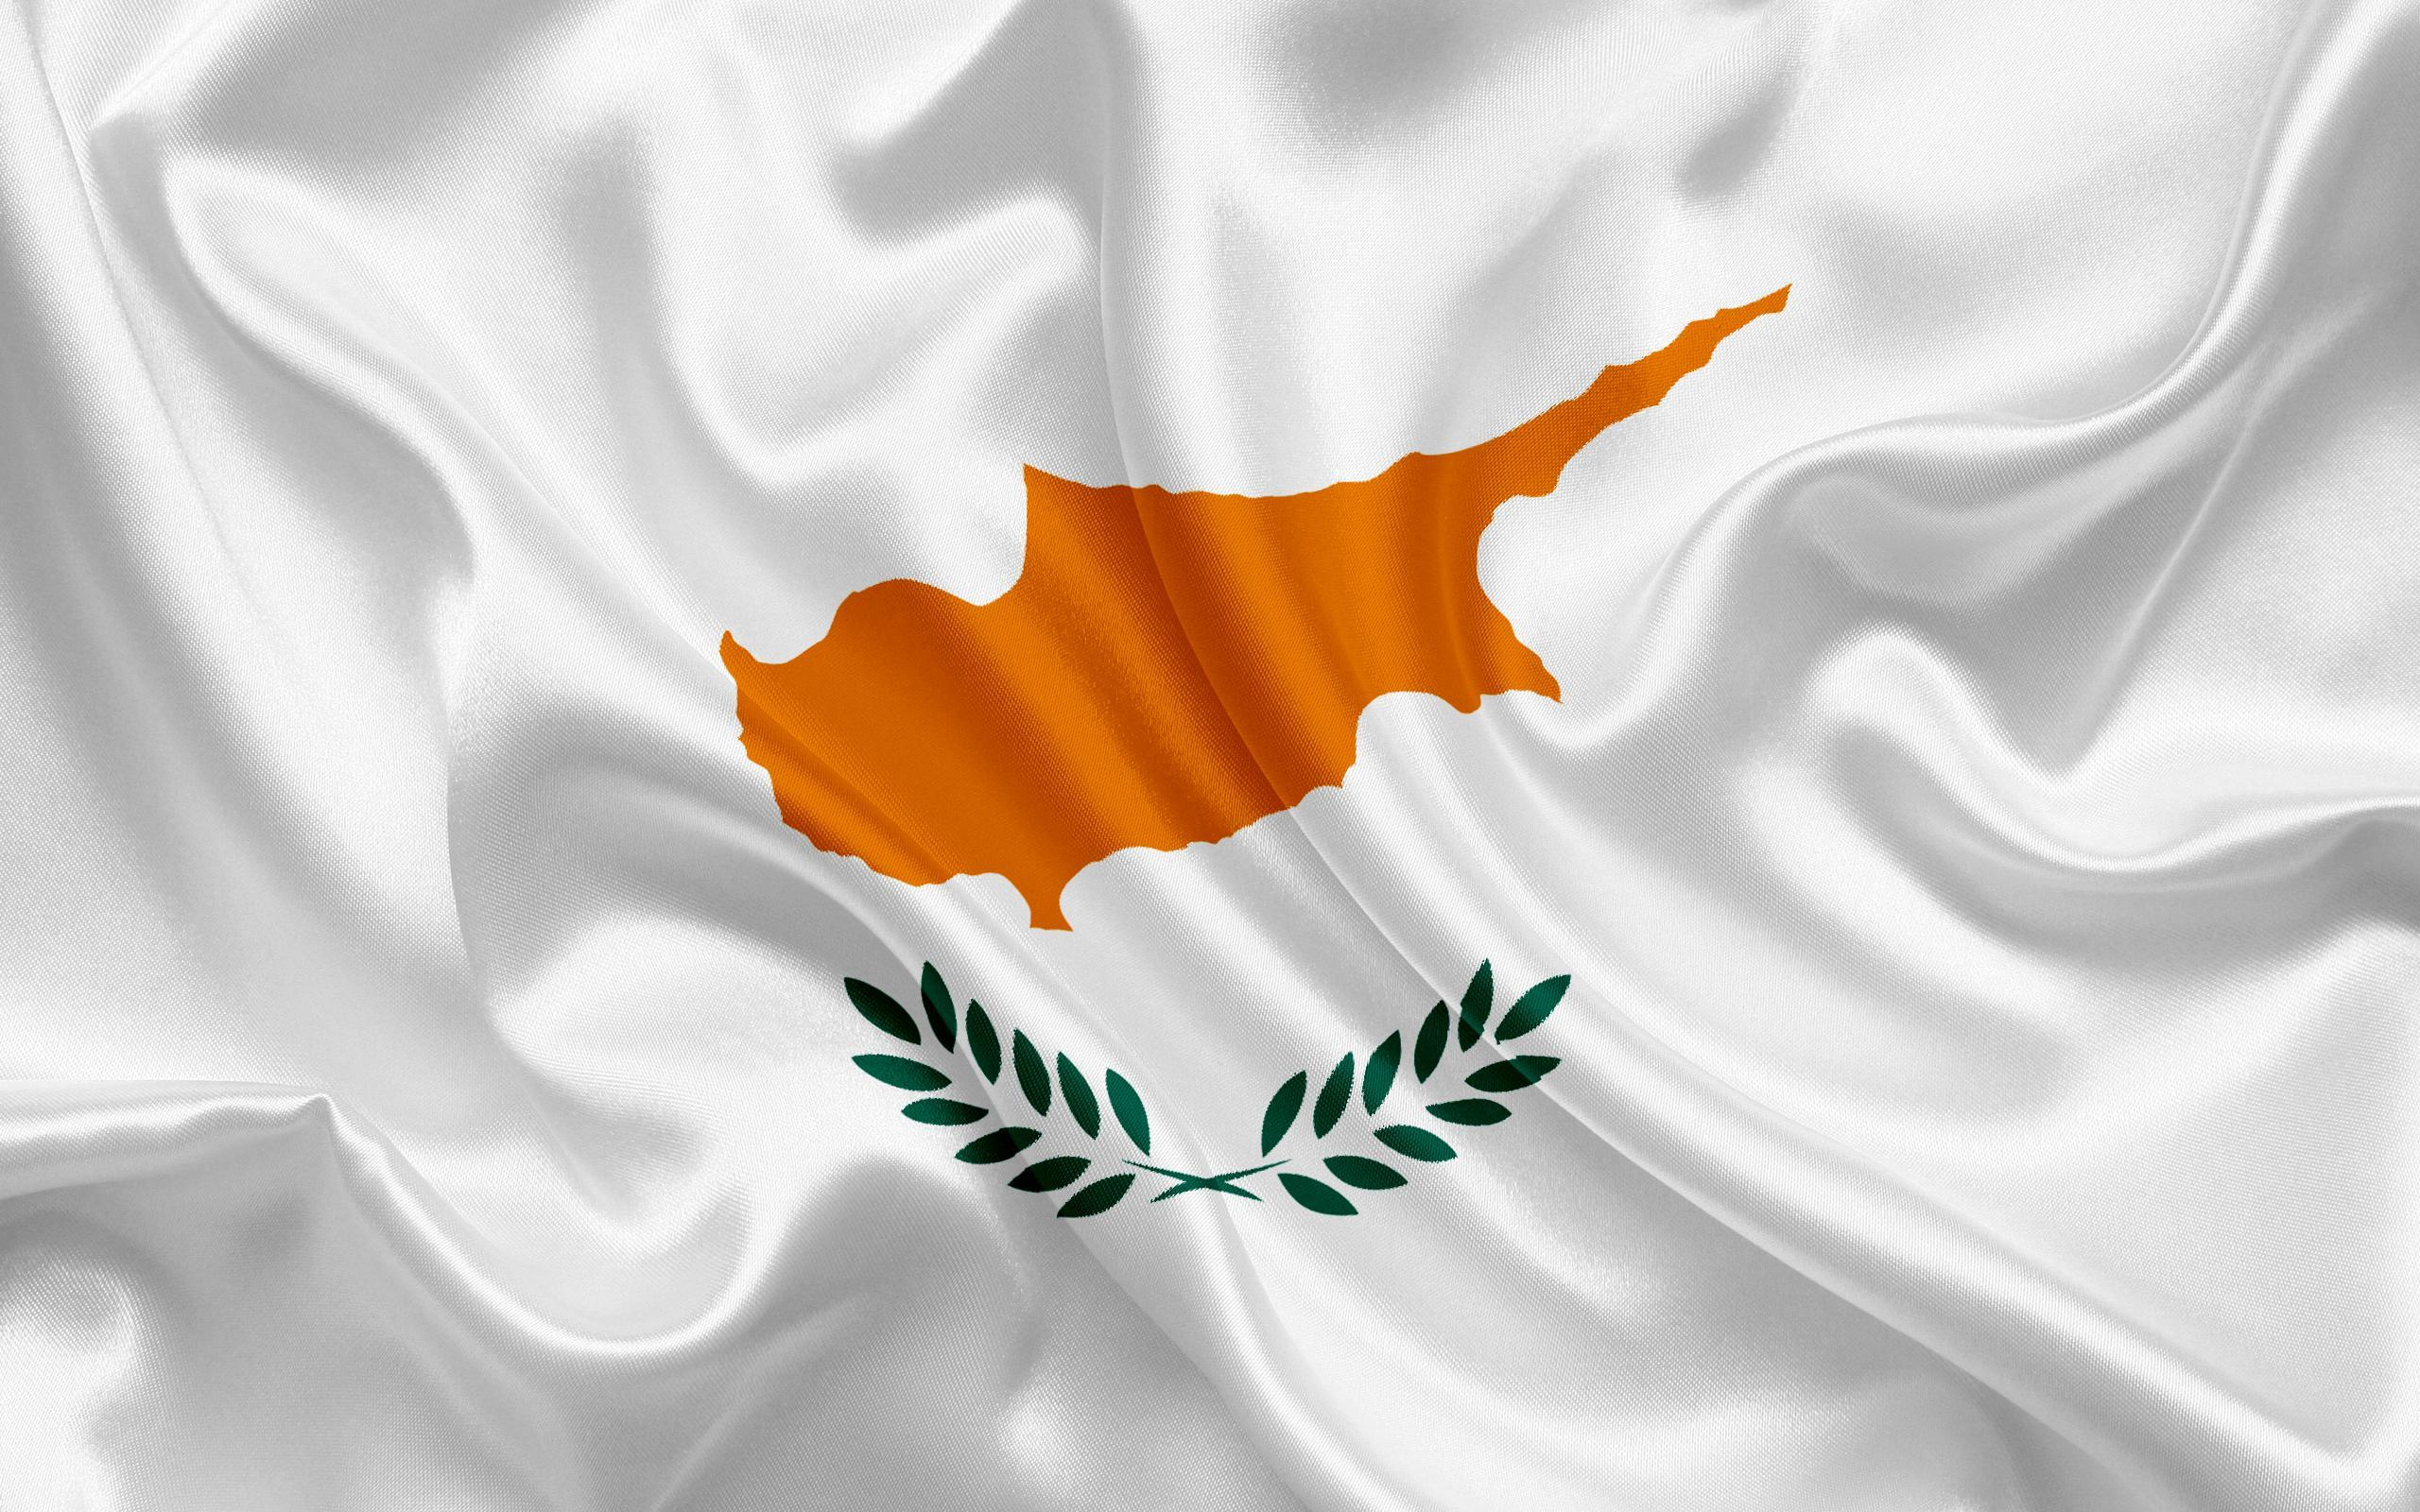 Download wallpapers flag of Cyprus, Europe, Cyprus, white silk flag ...